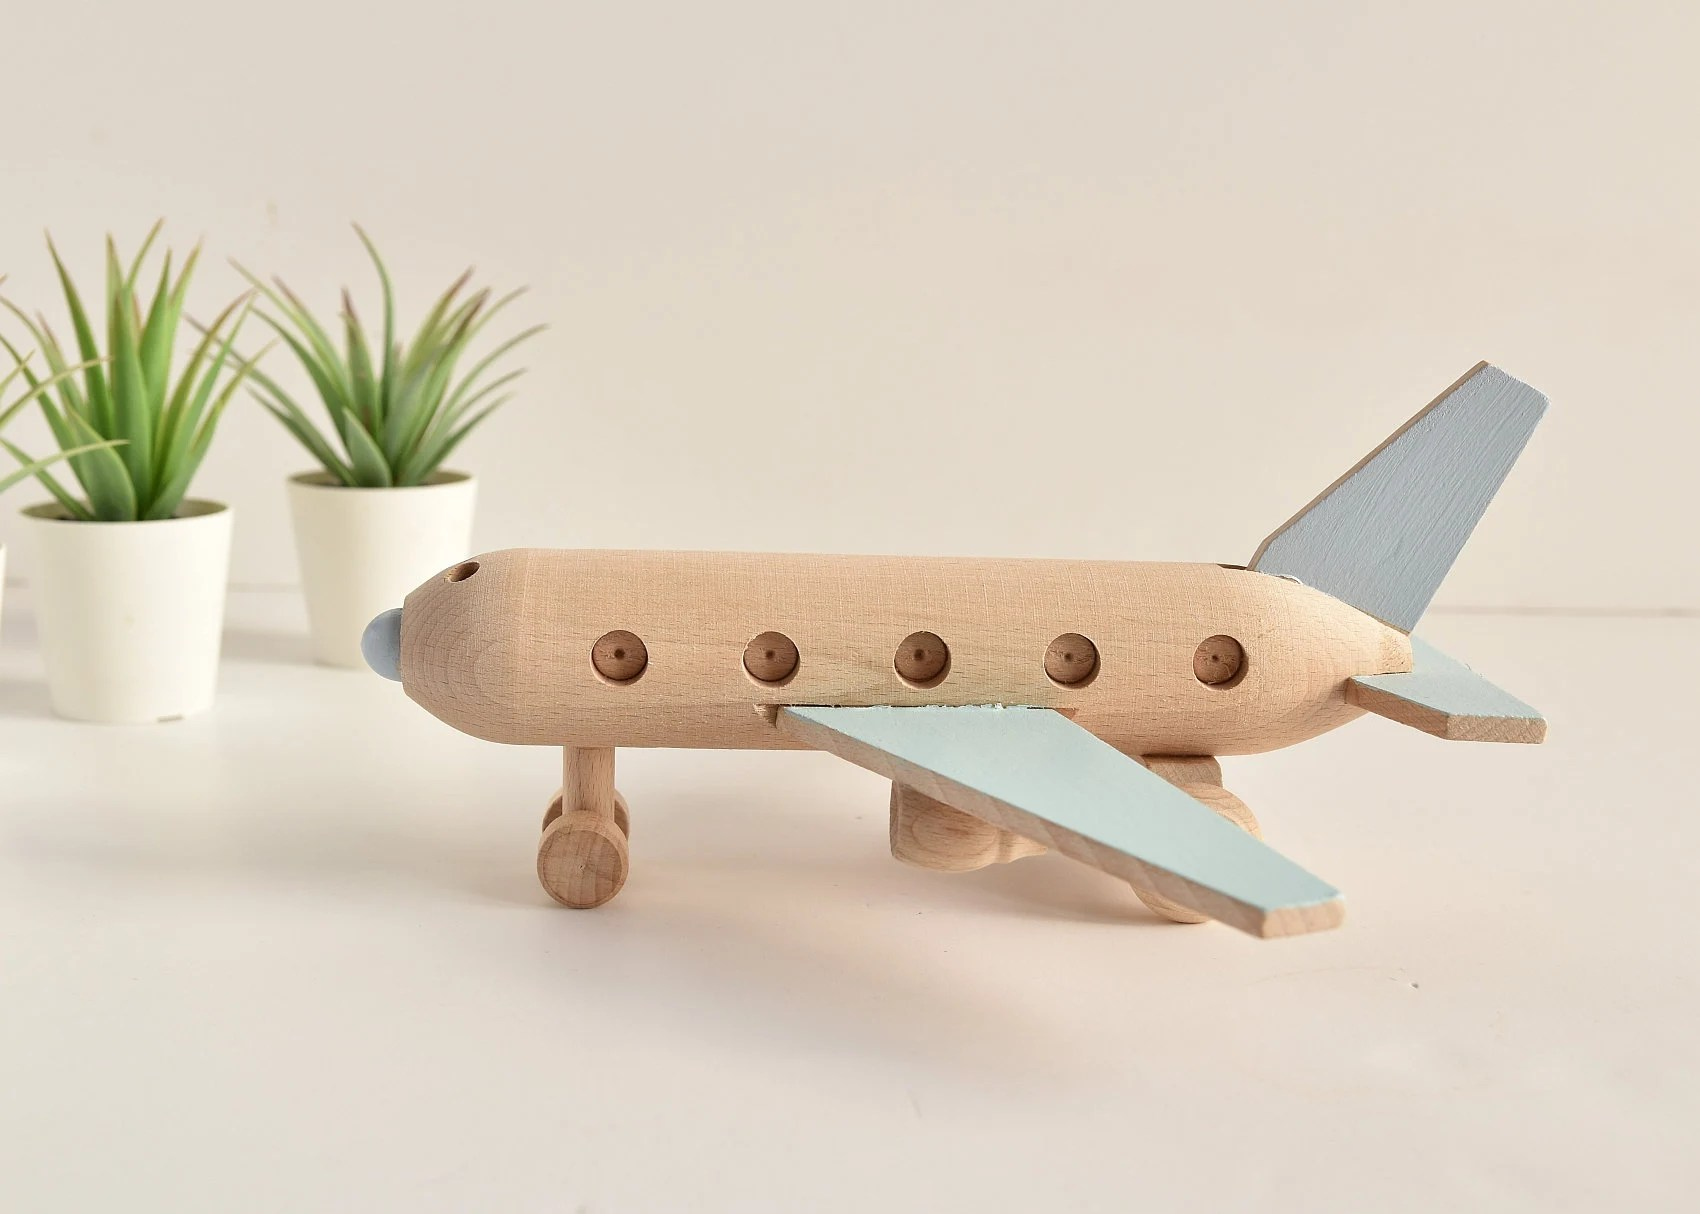 More colours                                                                                        Wooden airplane – Wooden toys – Eco toy – Airplane decor – Toddler toy – Vintage toys                                                                    MamuConcept         From shop MamuConcept                               5 out of 5 stars                                                                                                                                                                                                                                                          (156)                 156 reviews                                                      CA$50.44